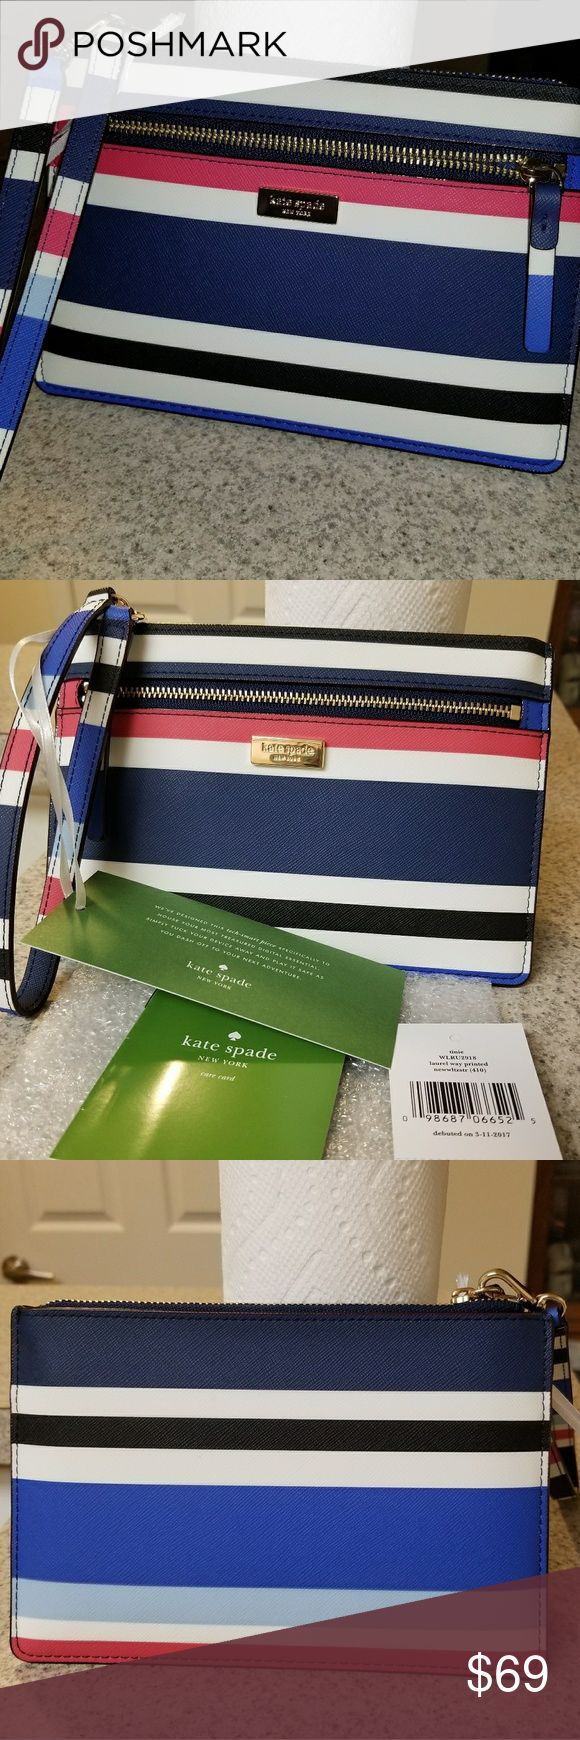 """NWT Kate Spade Laurel Way Berber Stripe Tinie Nwt Kate Spade wristlet also known as a Tinie in the laurel way stripe. So cute.   Zipper closure,  4 interior credit card slots and an exterior zipper pocket.   Measurements 4.8"""" H x 7.3"""" W kate spade Bags Clutches & Wristlets"""